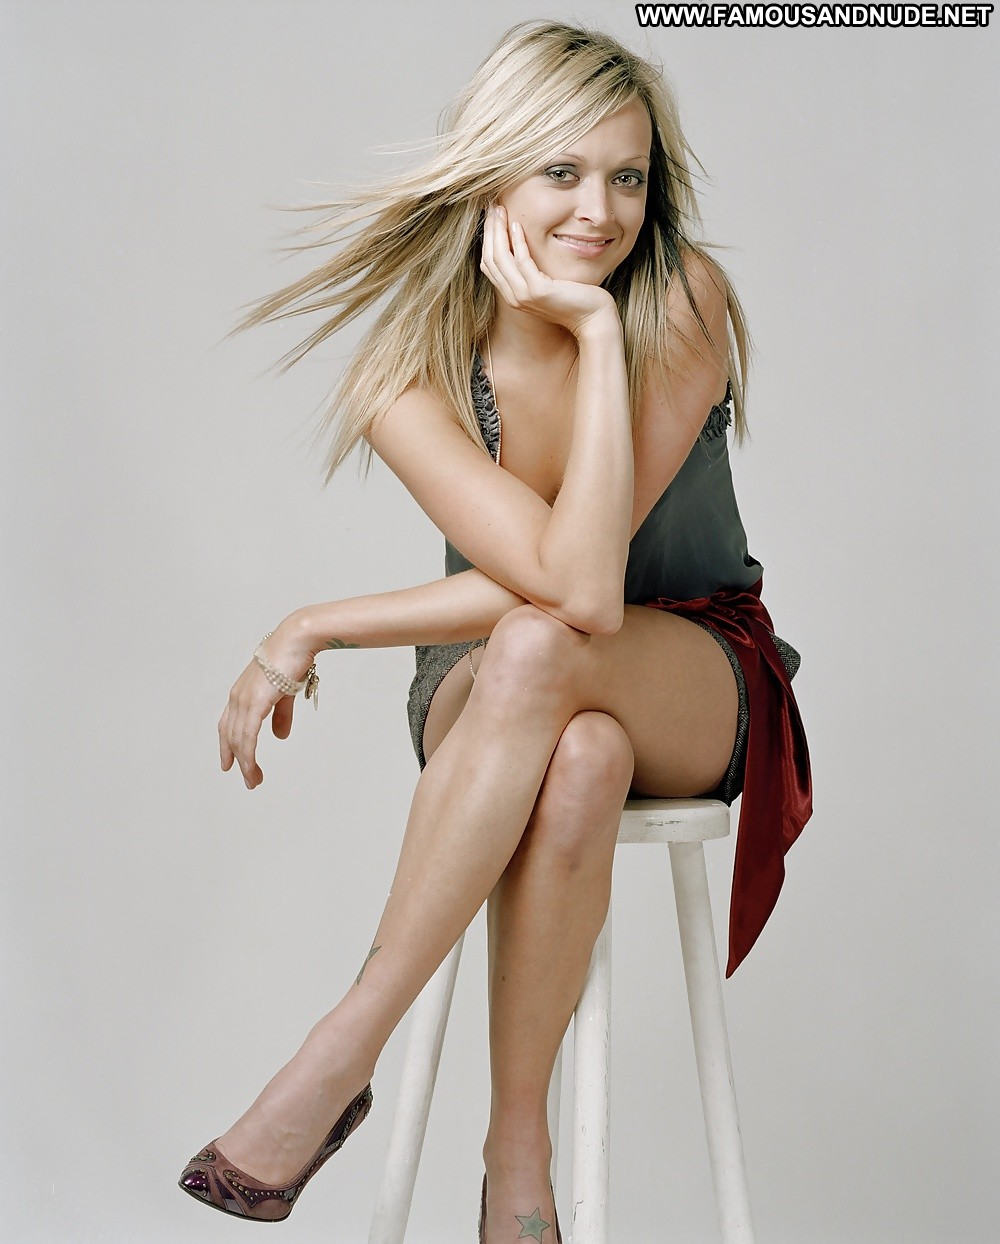 Celeb Fearne Cotton Nude Pictures Pic